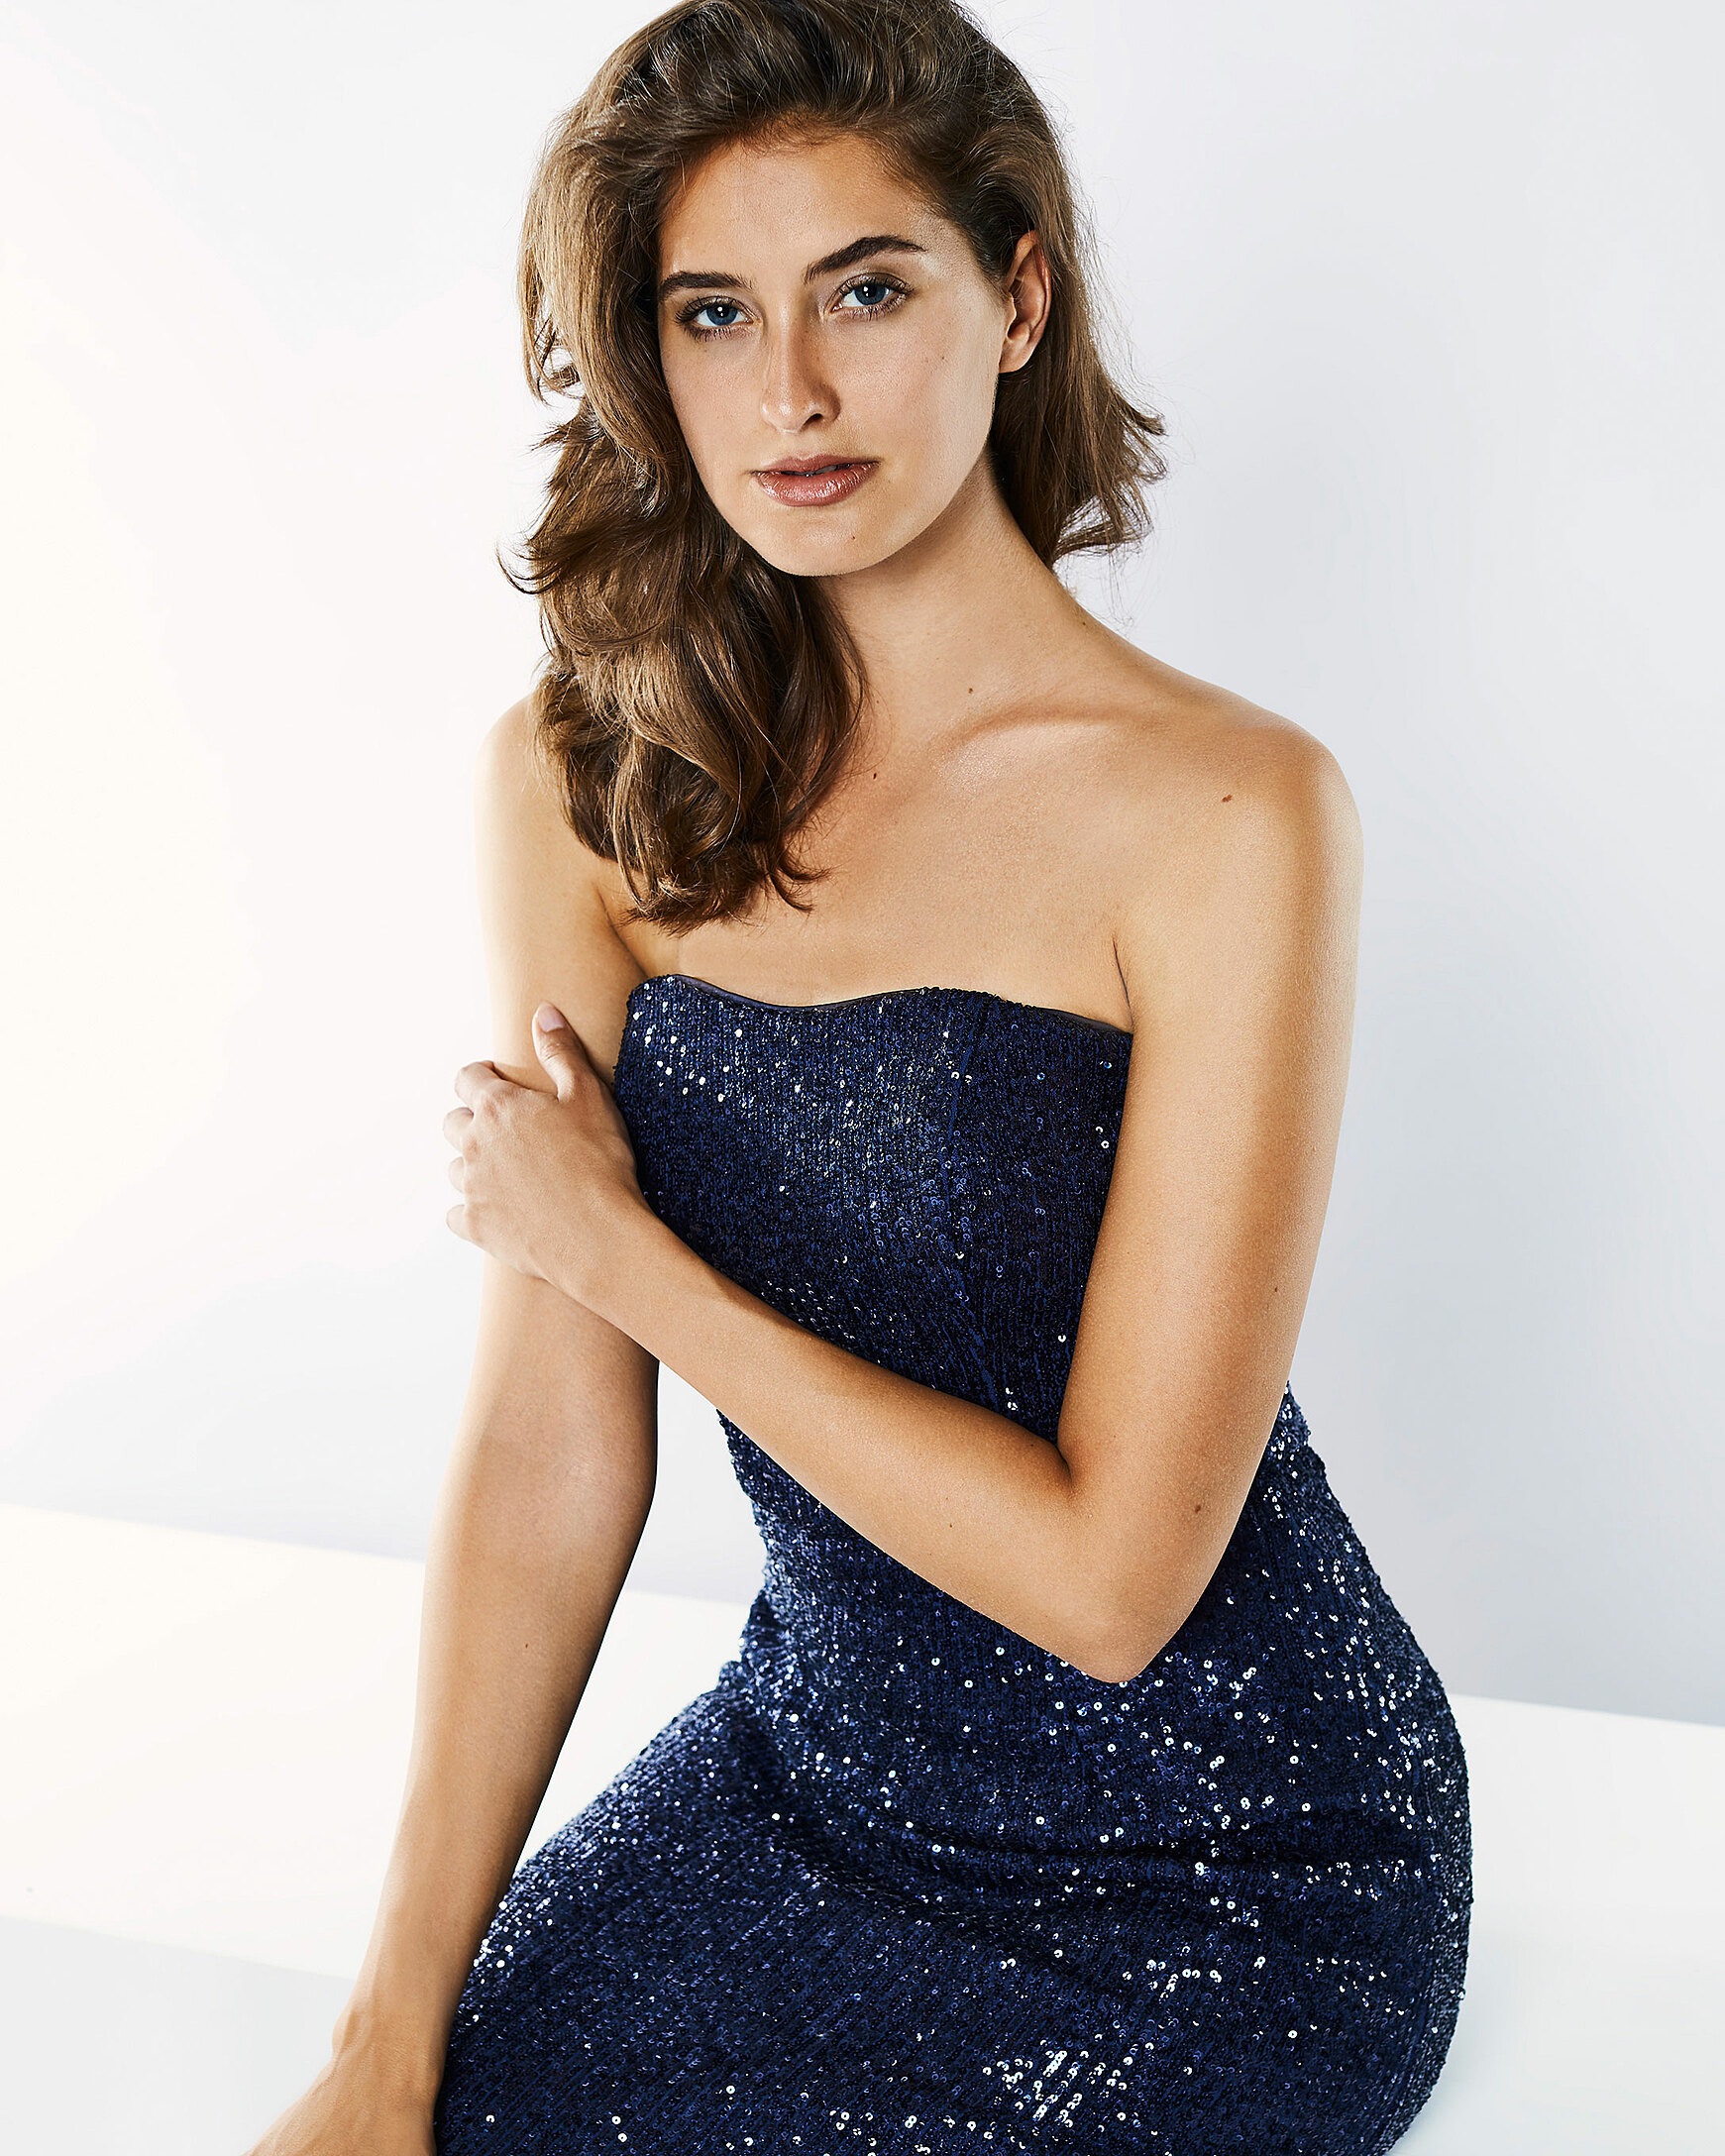 A brown hair model in sparkling blue strapless dress sits in a white setting